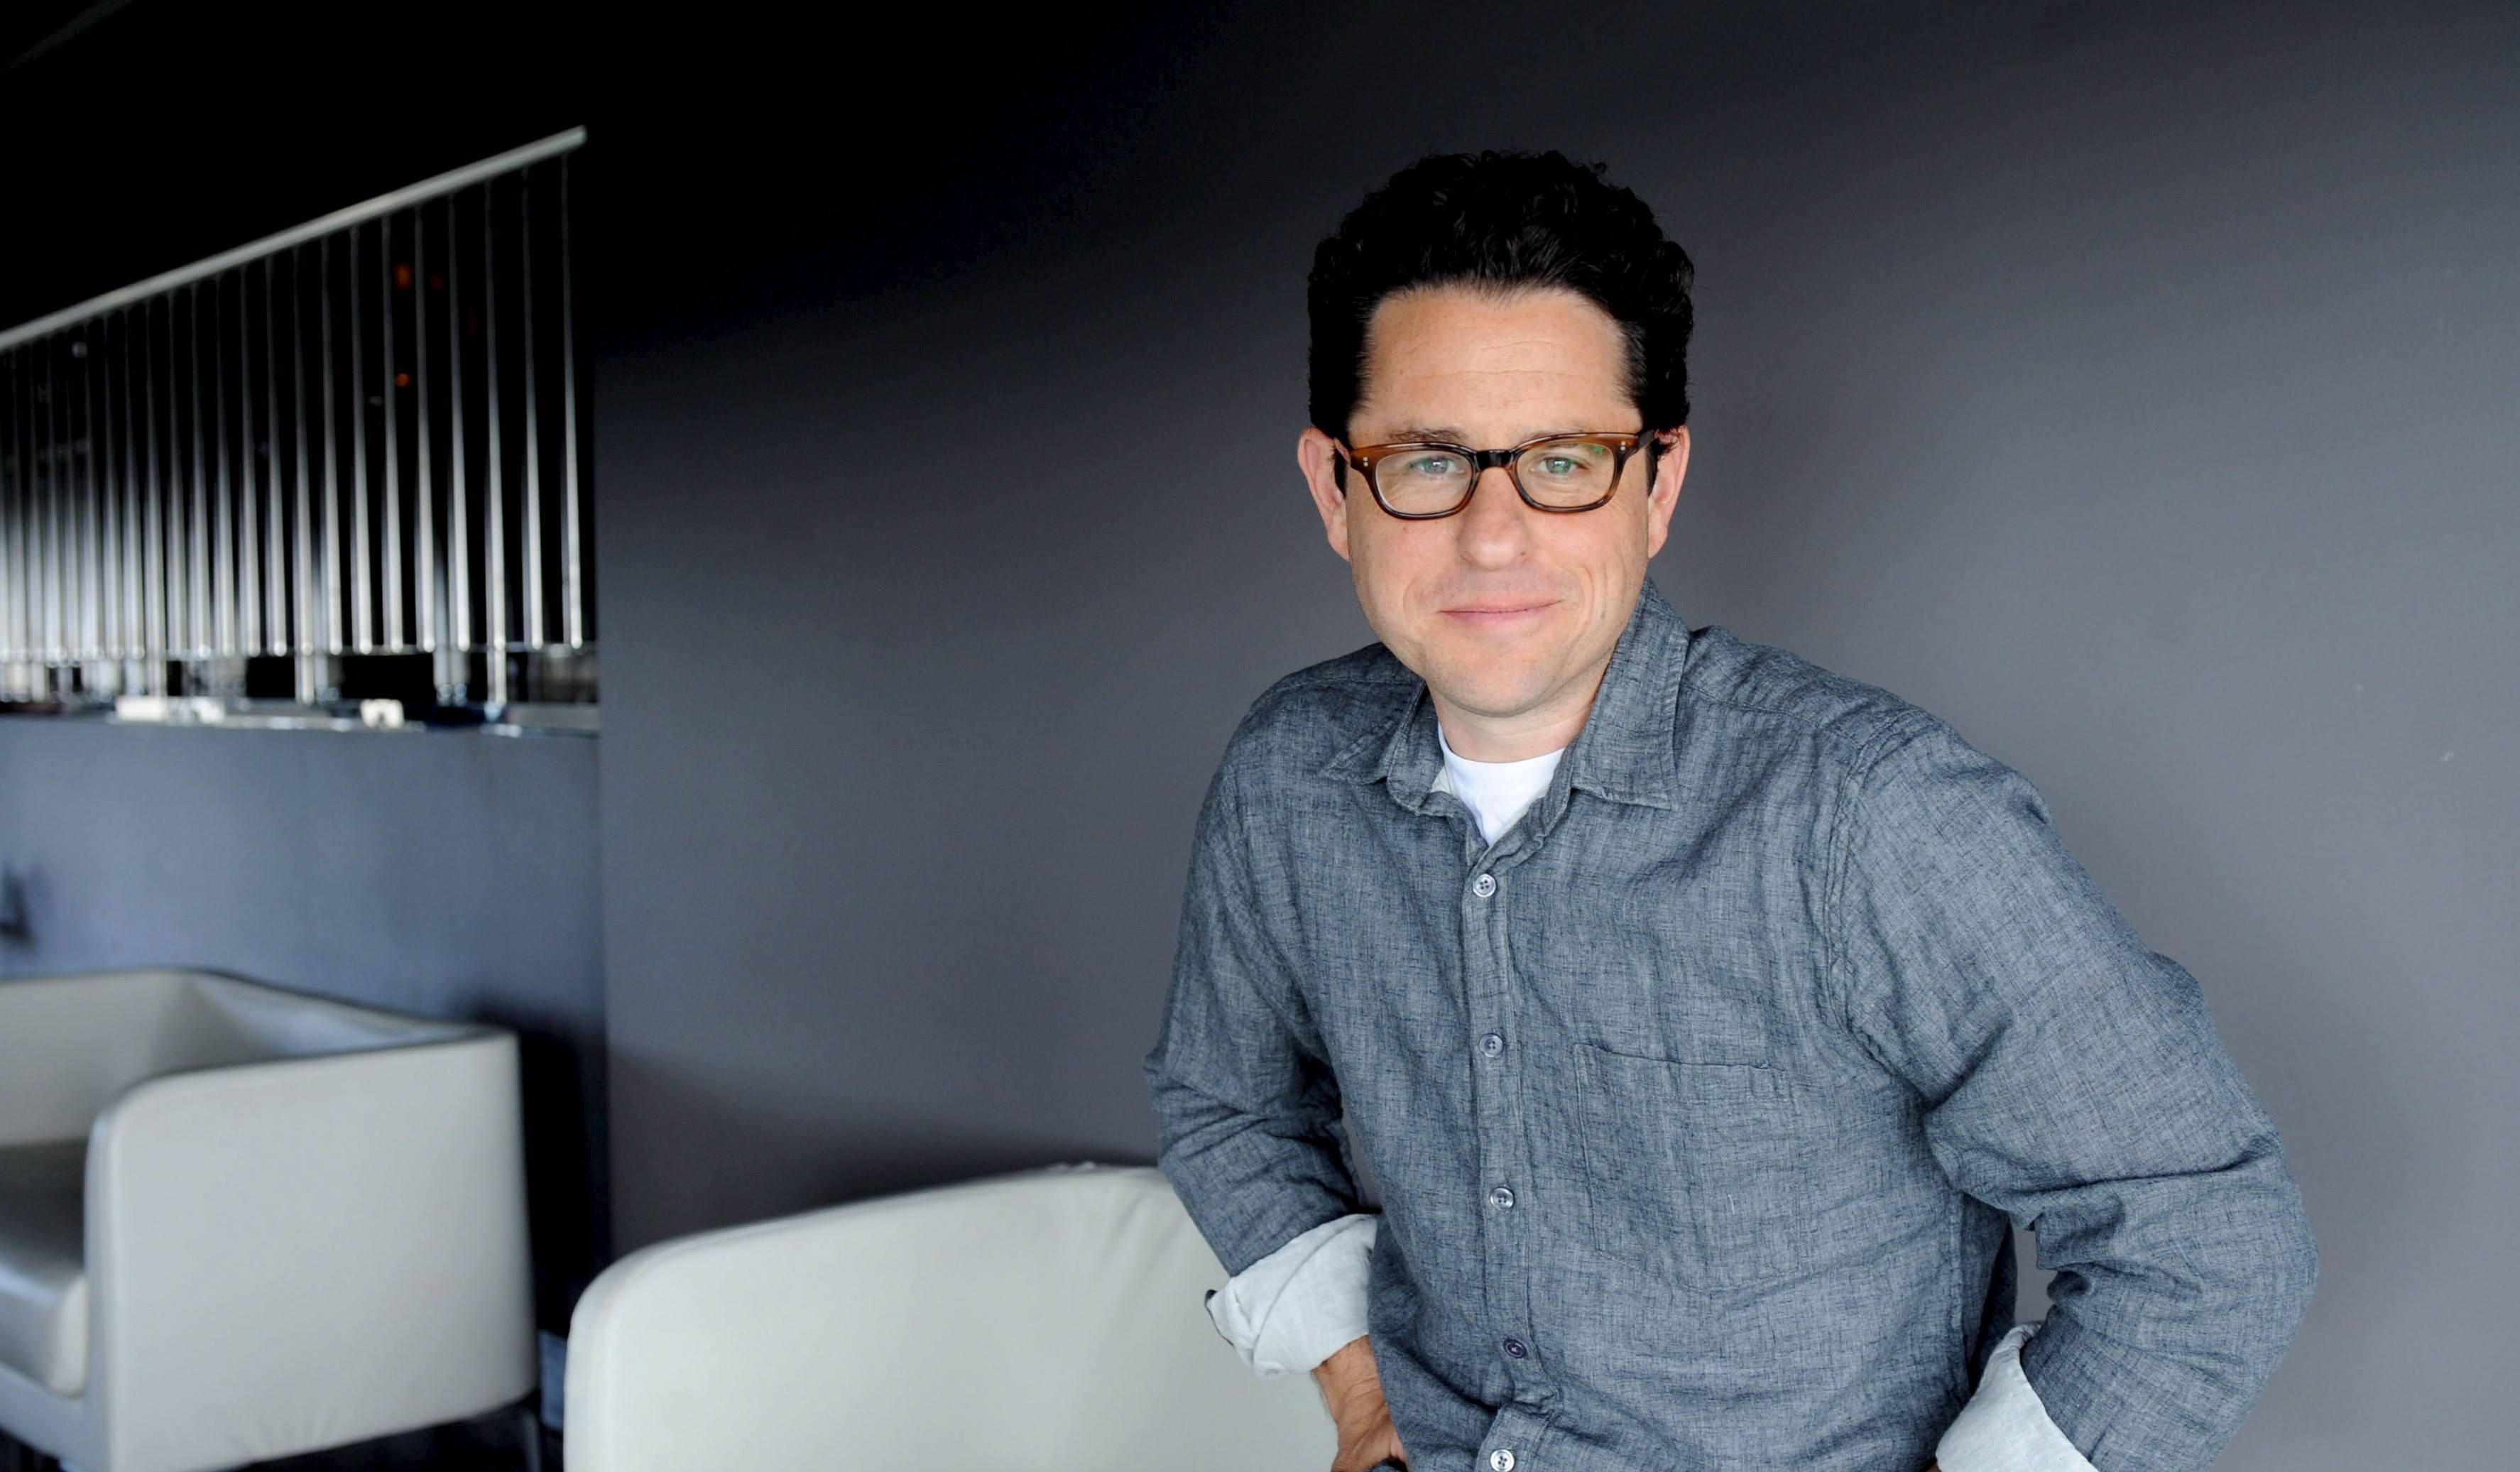 Star Wars Episode 7 may not be released in 2015 as JJ Abrams calls job 'wildly surreal'